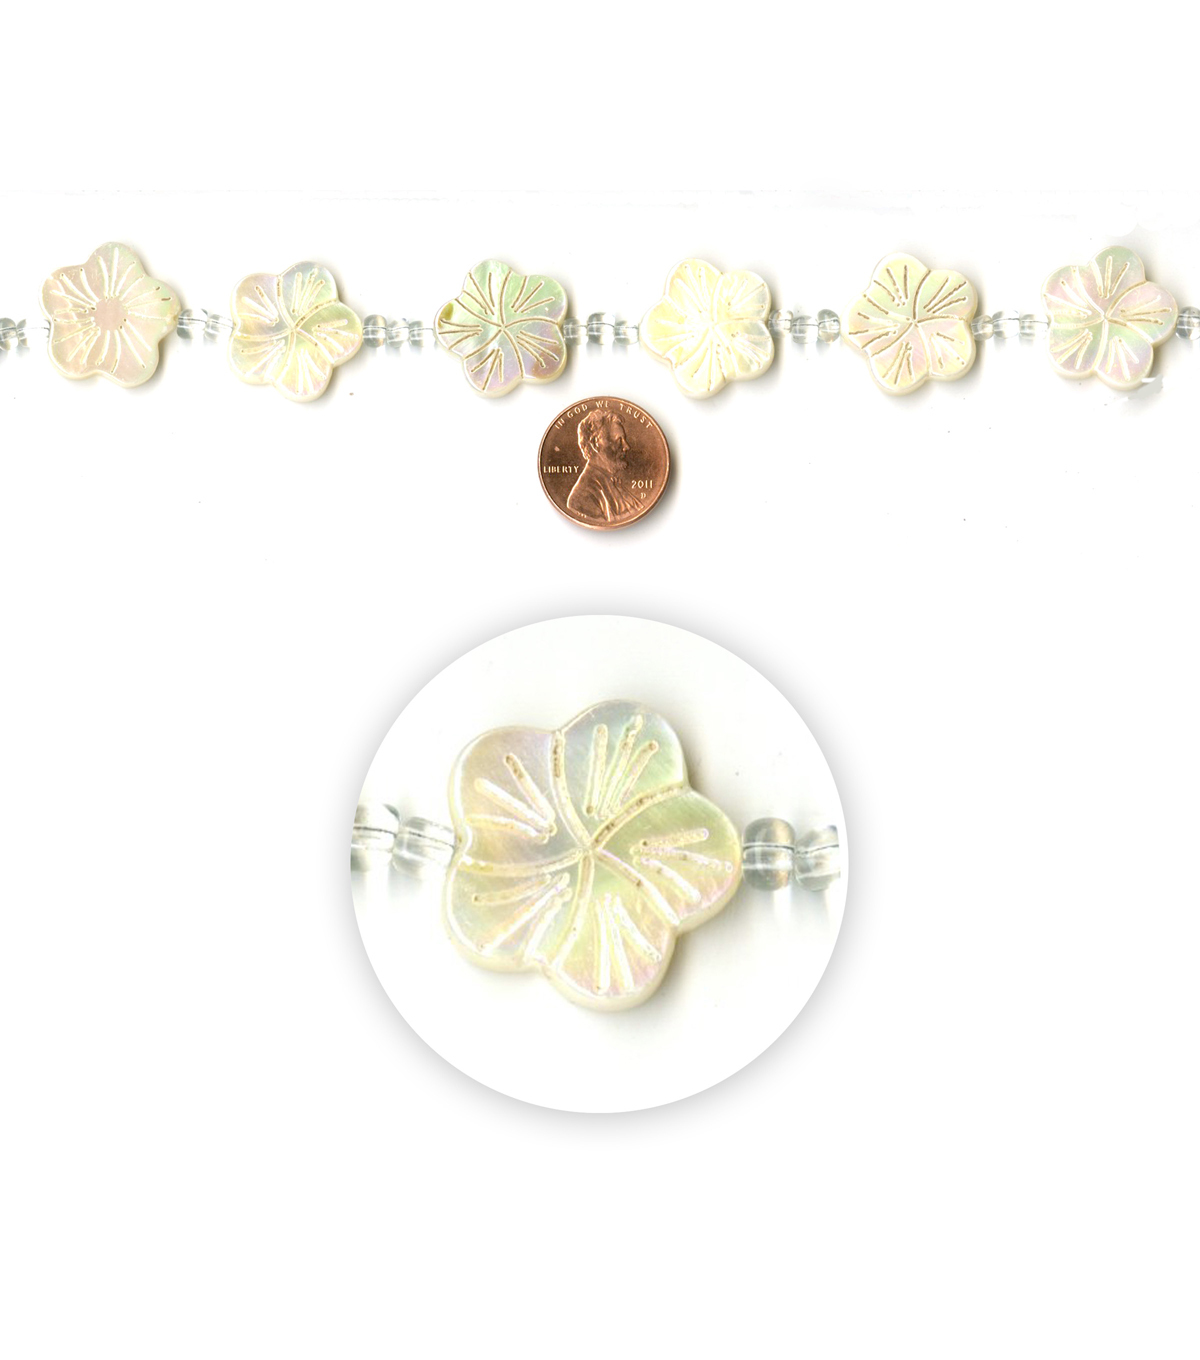 Blue Moon Strung Mother of Pearl Shell Beads,Flower,Ivory AB,Carved